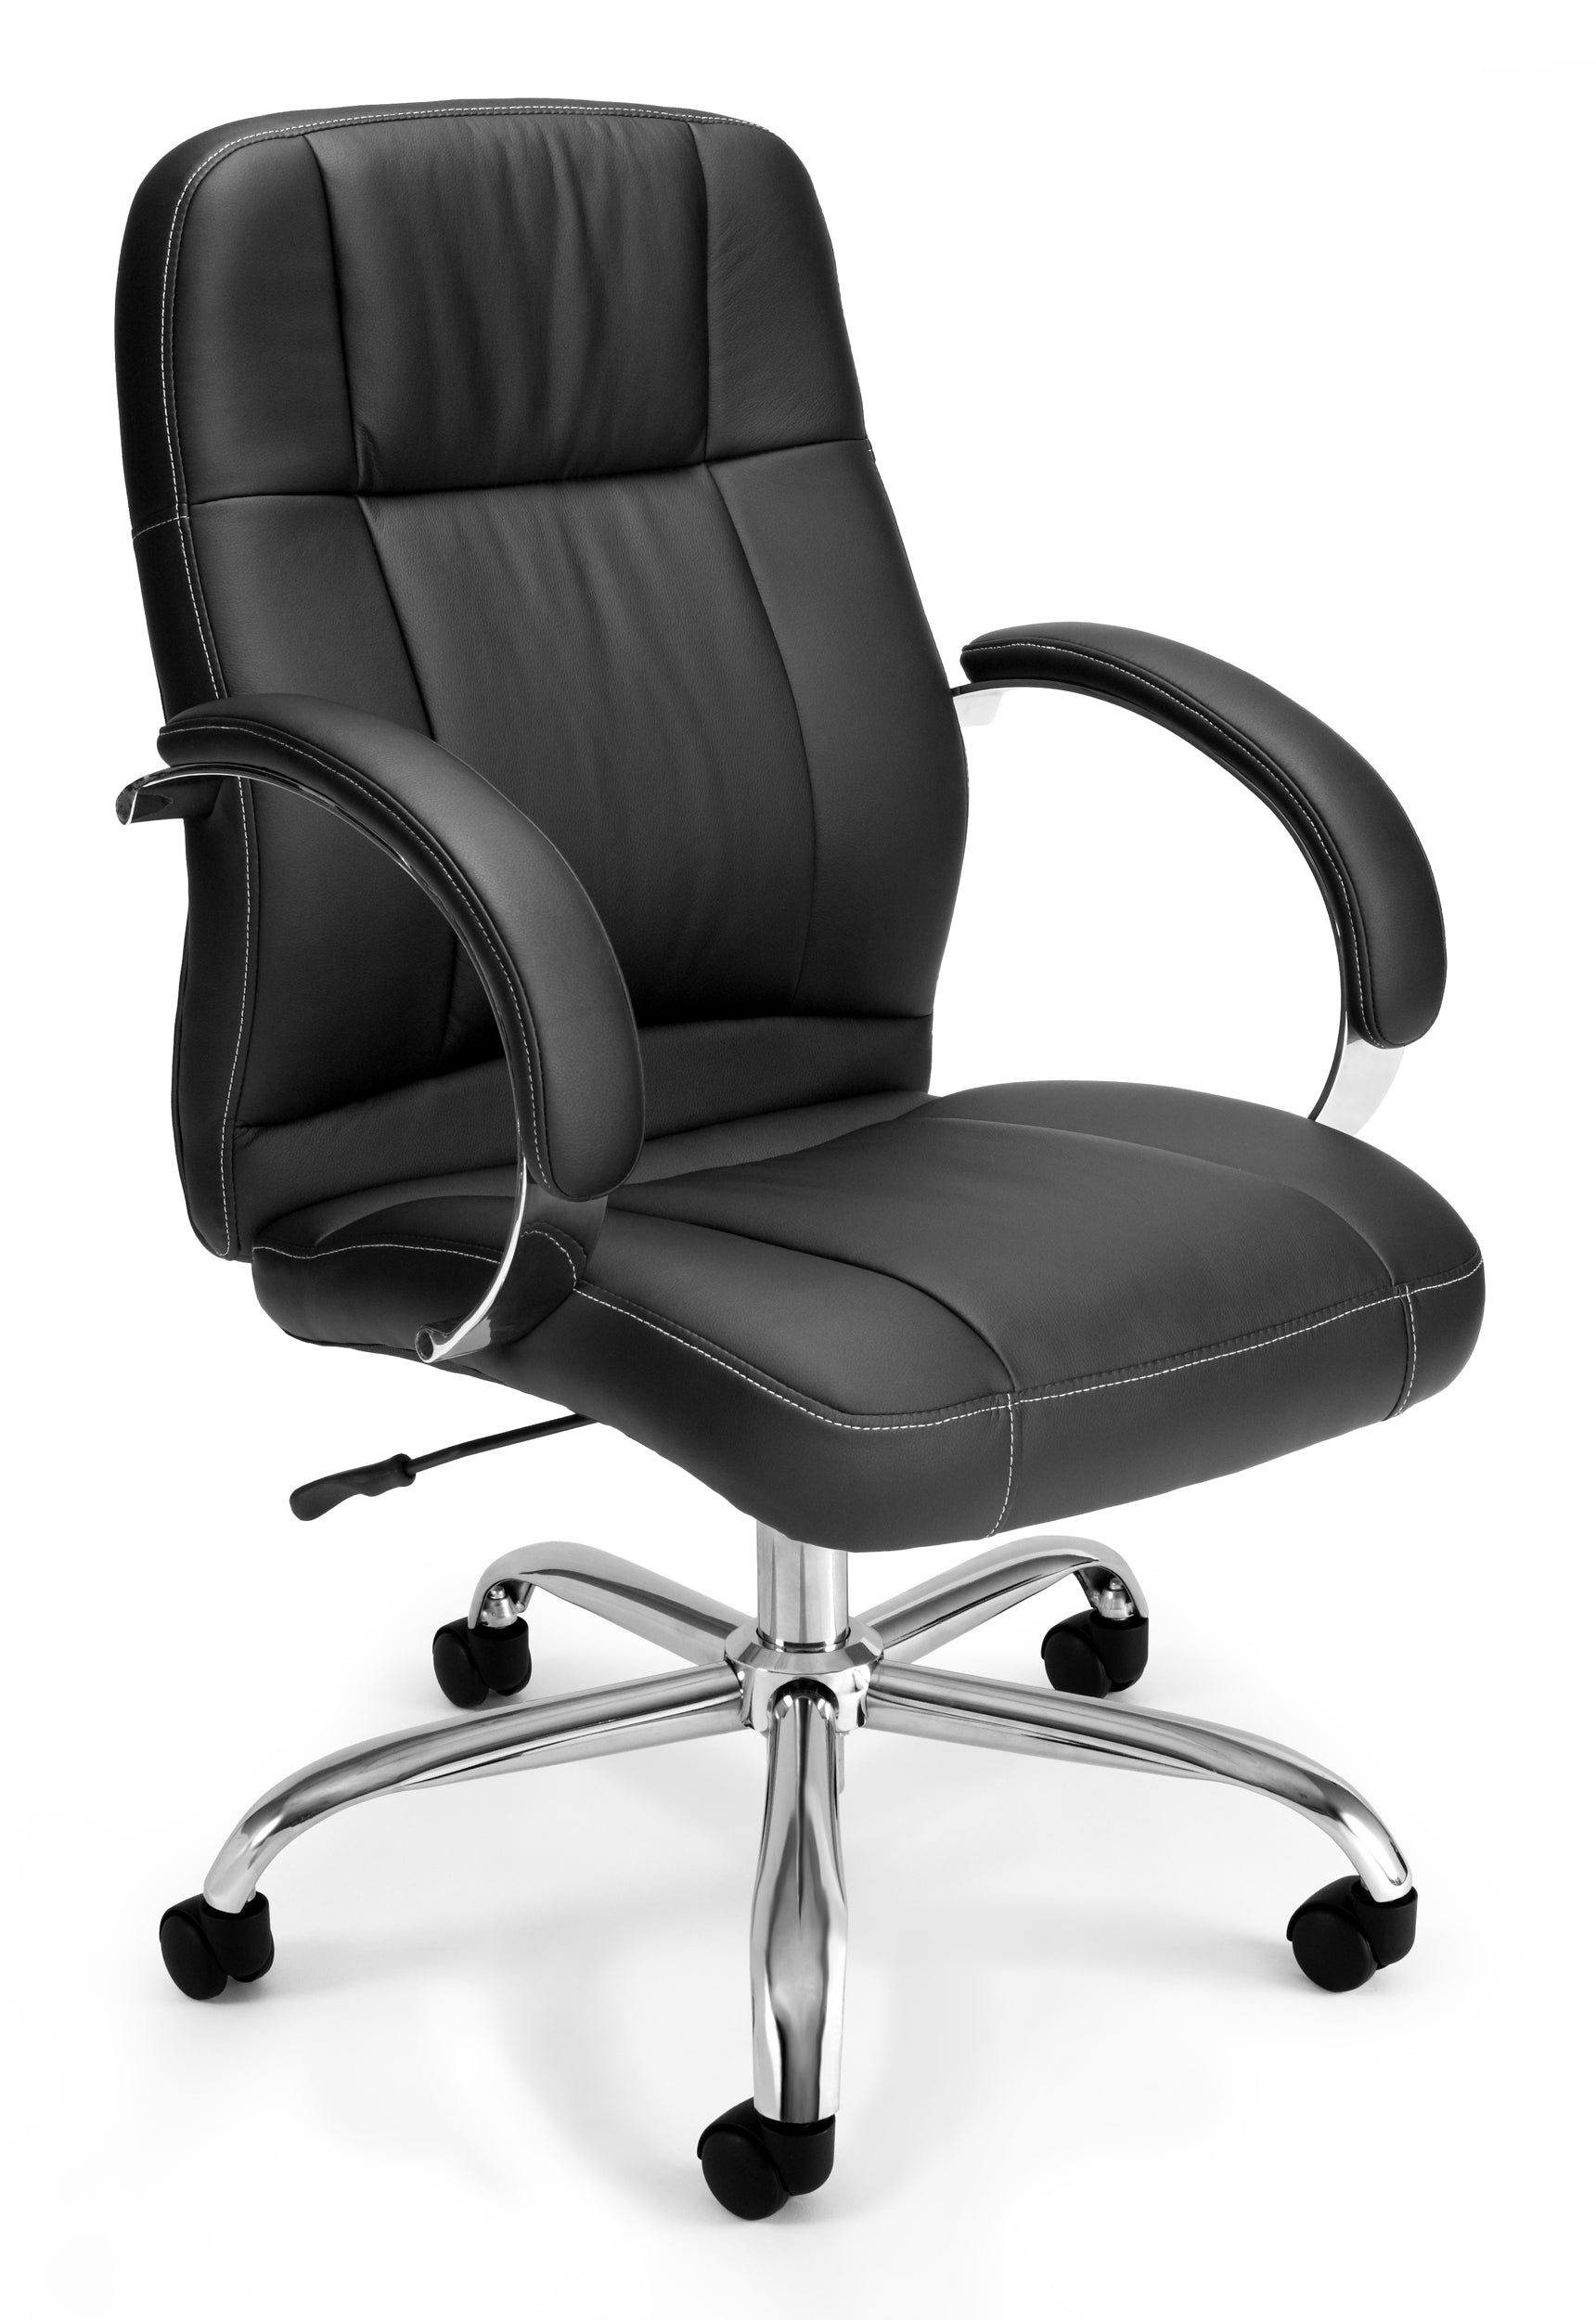 517-LX Stimulus Series Leather Mid-Back Executive Office Arms Chair